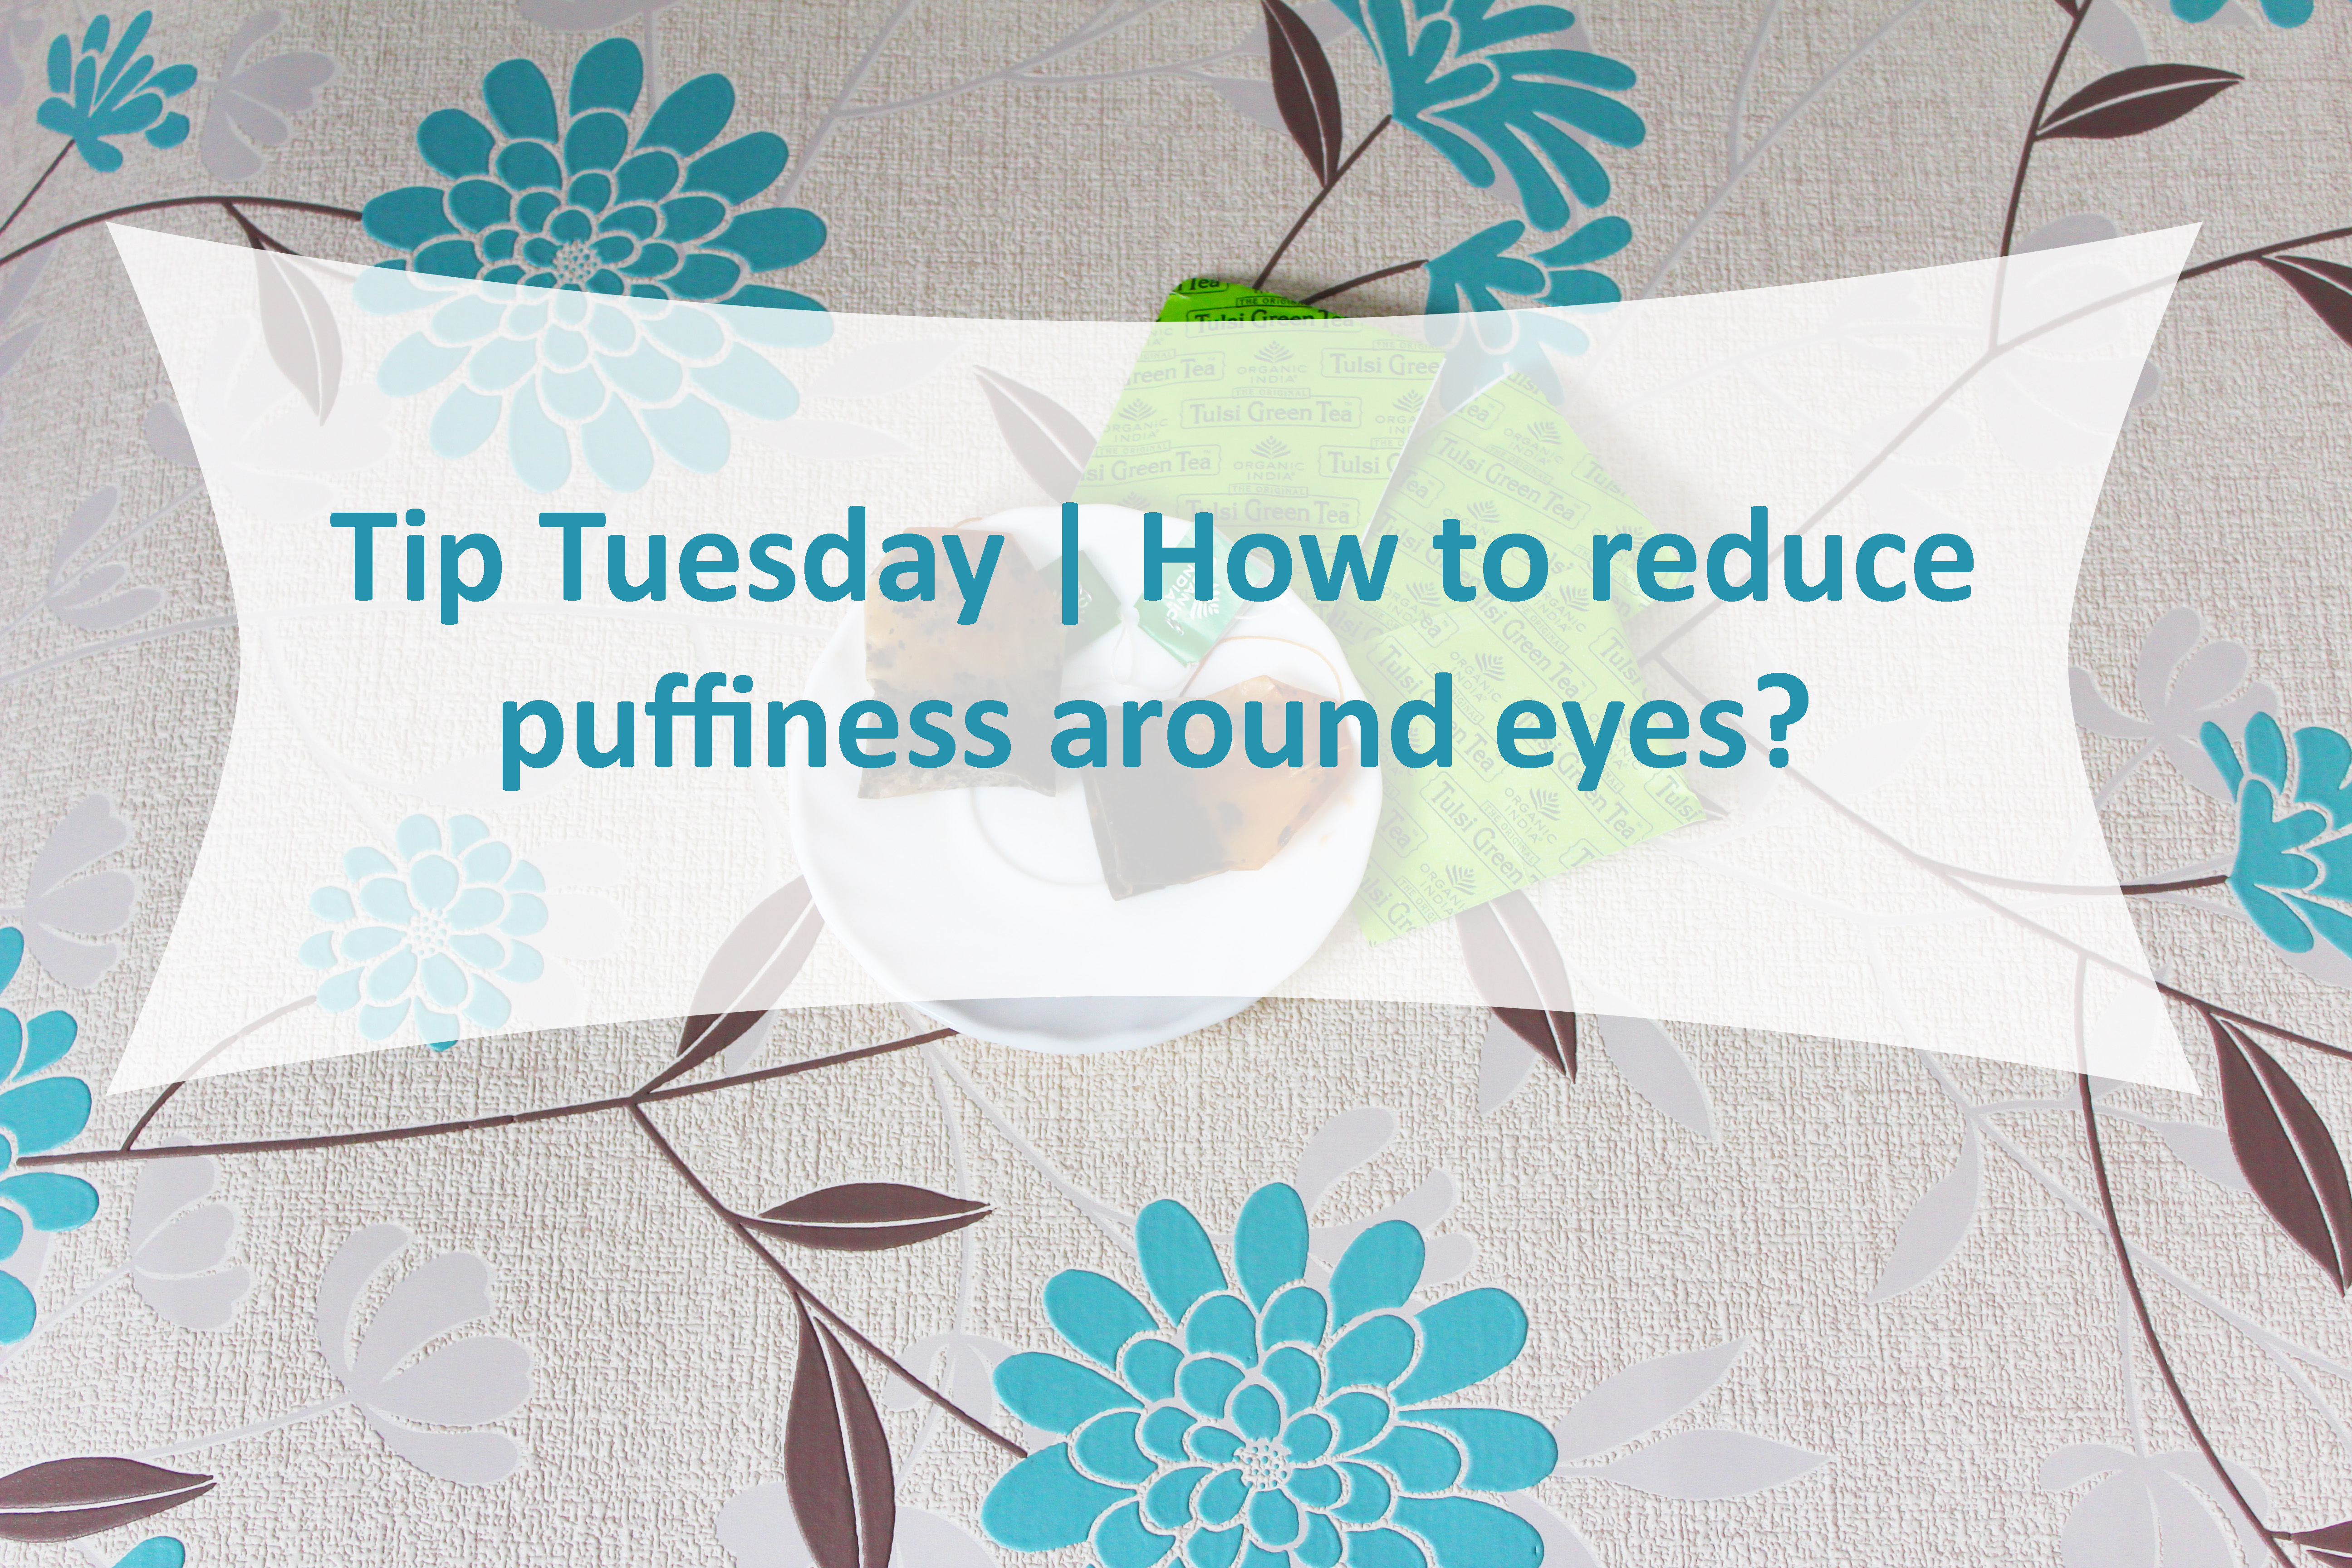 Tip Tuesday | How to reduce puffiness around eyes?